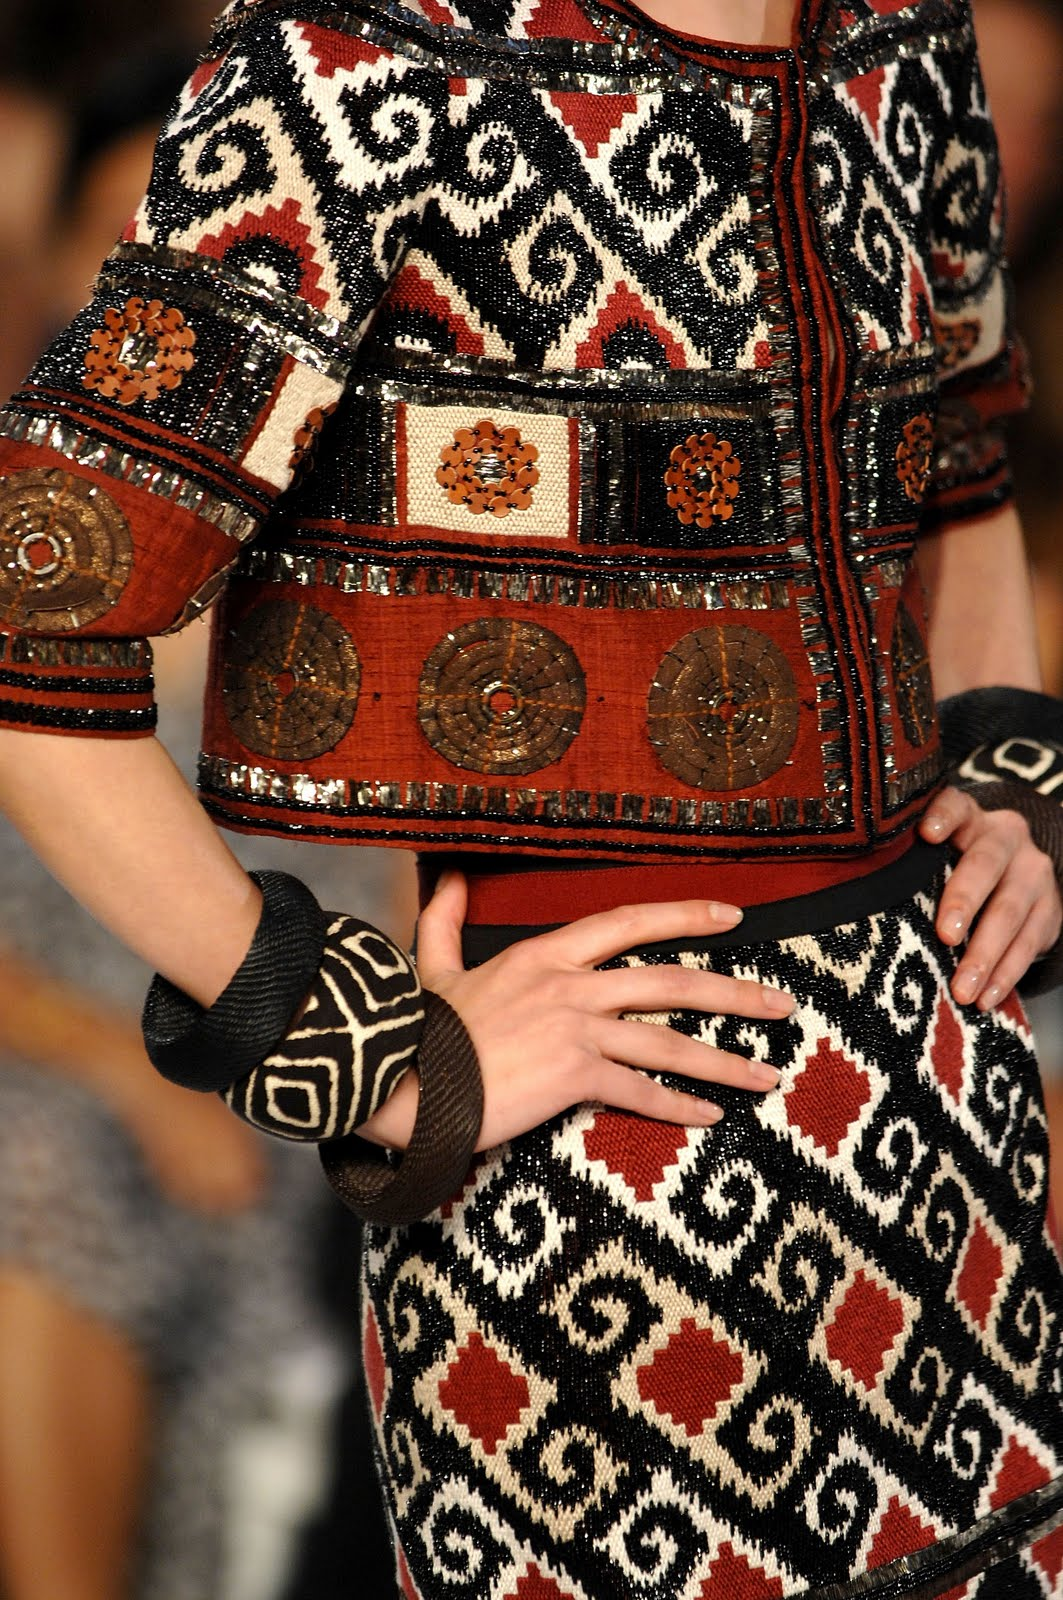 1000+ ideas about Tribal Patterns on Pinterest | Scarf ... - photo#31